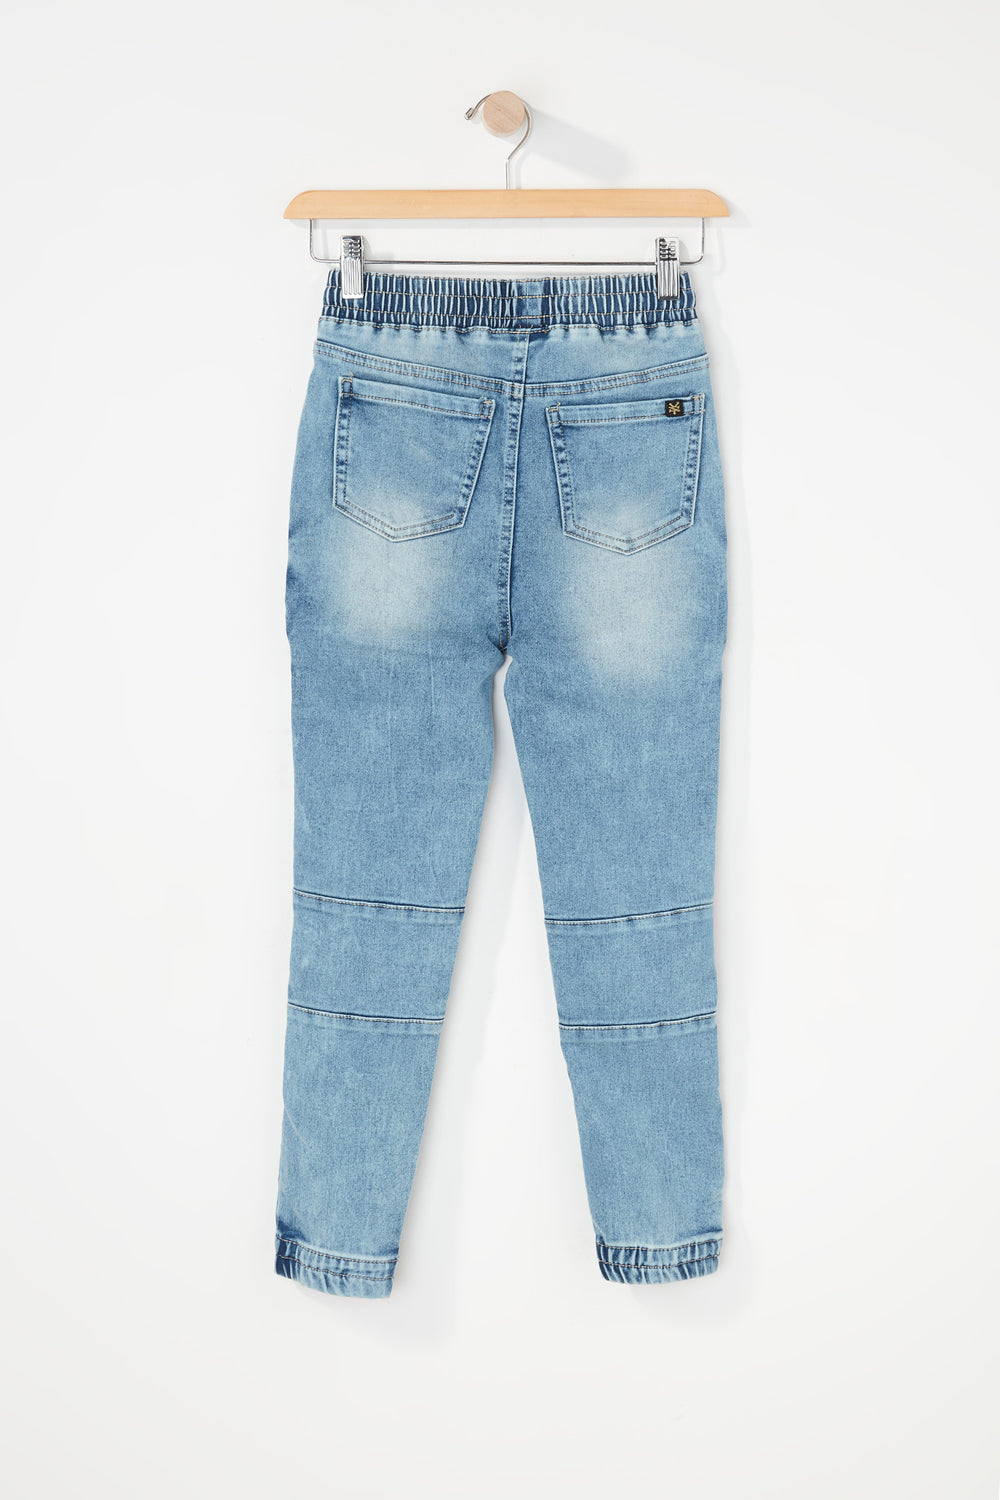 Zoo York Boys 5-Pocket Moto Acid Wash Jogger Jean Baby Blue